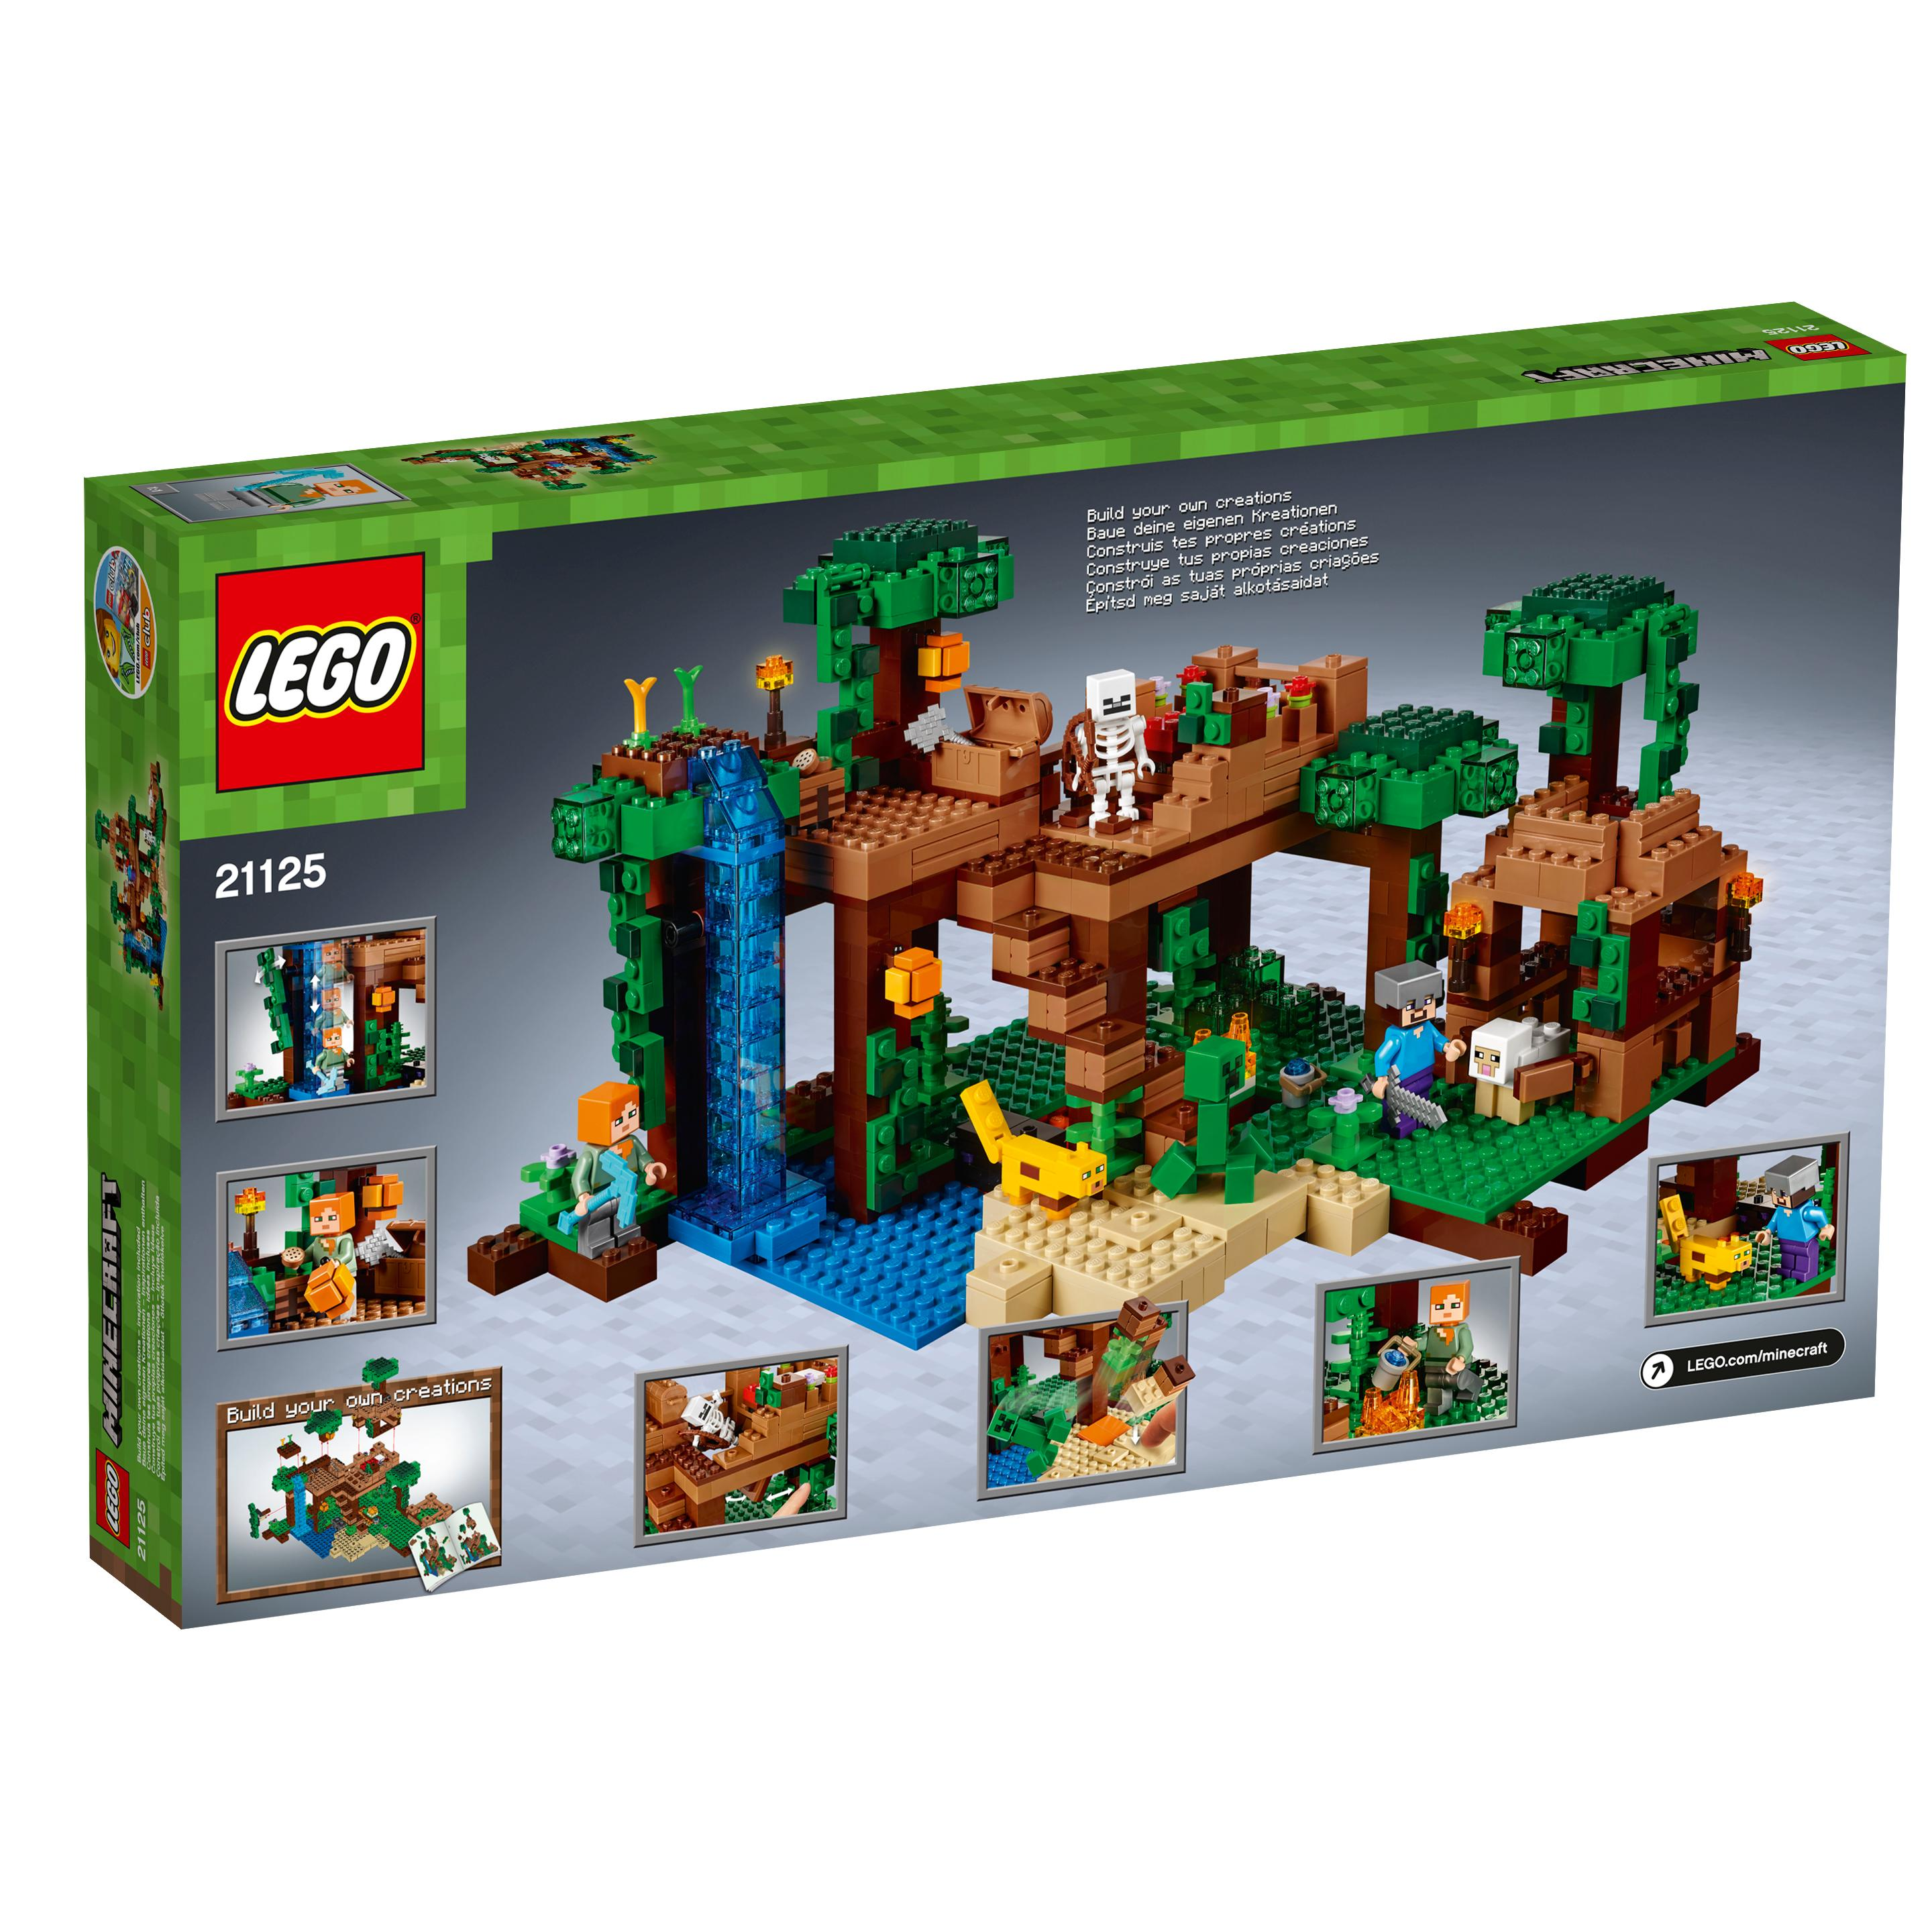 Joseph (maniac4bricksofficial) has informed me that various Toys R Us locations are doing a LEGO Elves Make and Take event this Saturday, April 25 starting at 11am. There's no word on what the build is because this is the first time I heard about the event but if you do know what the build is, let.